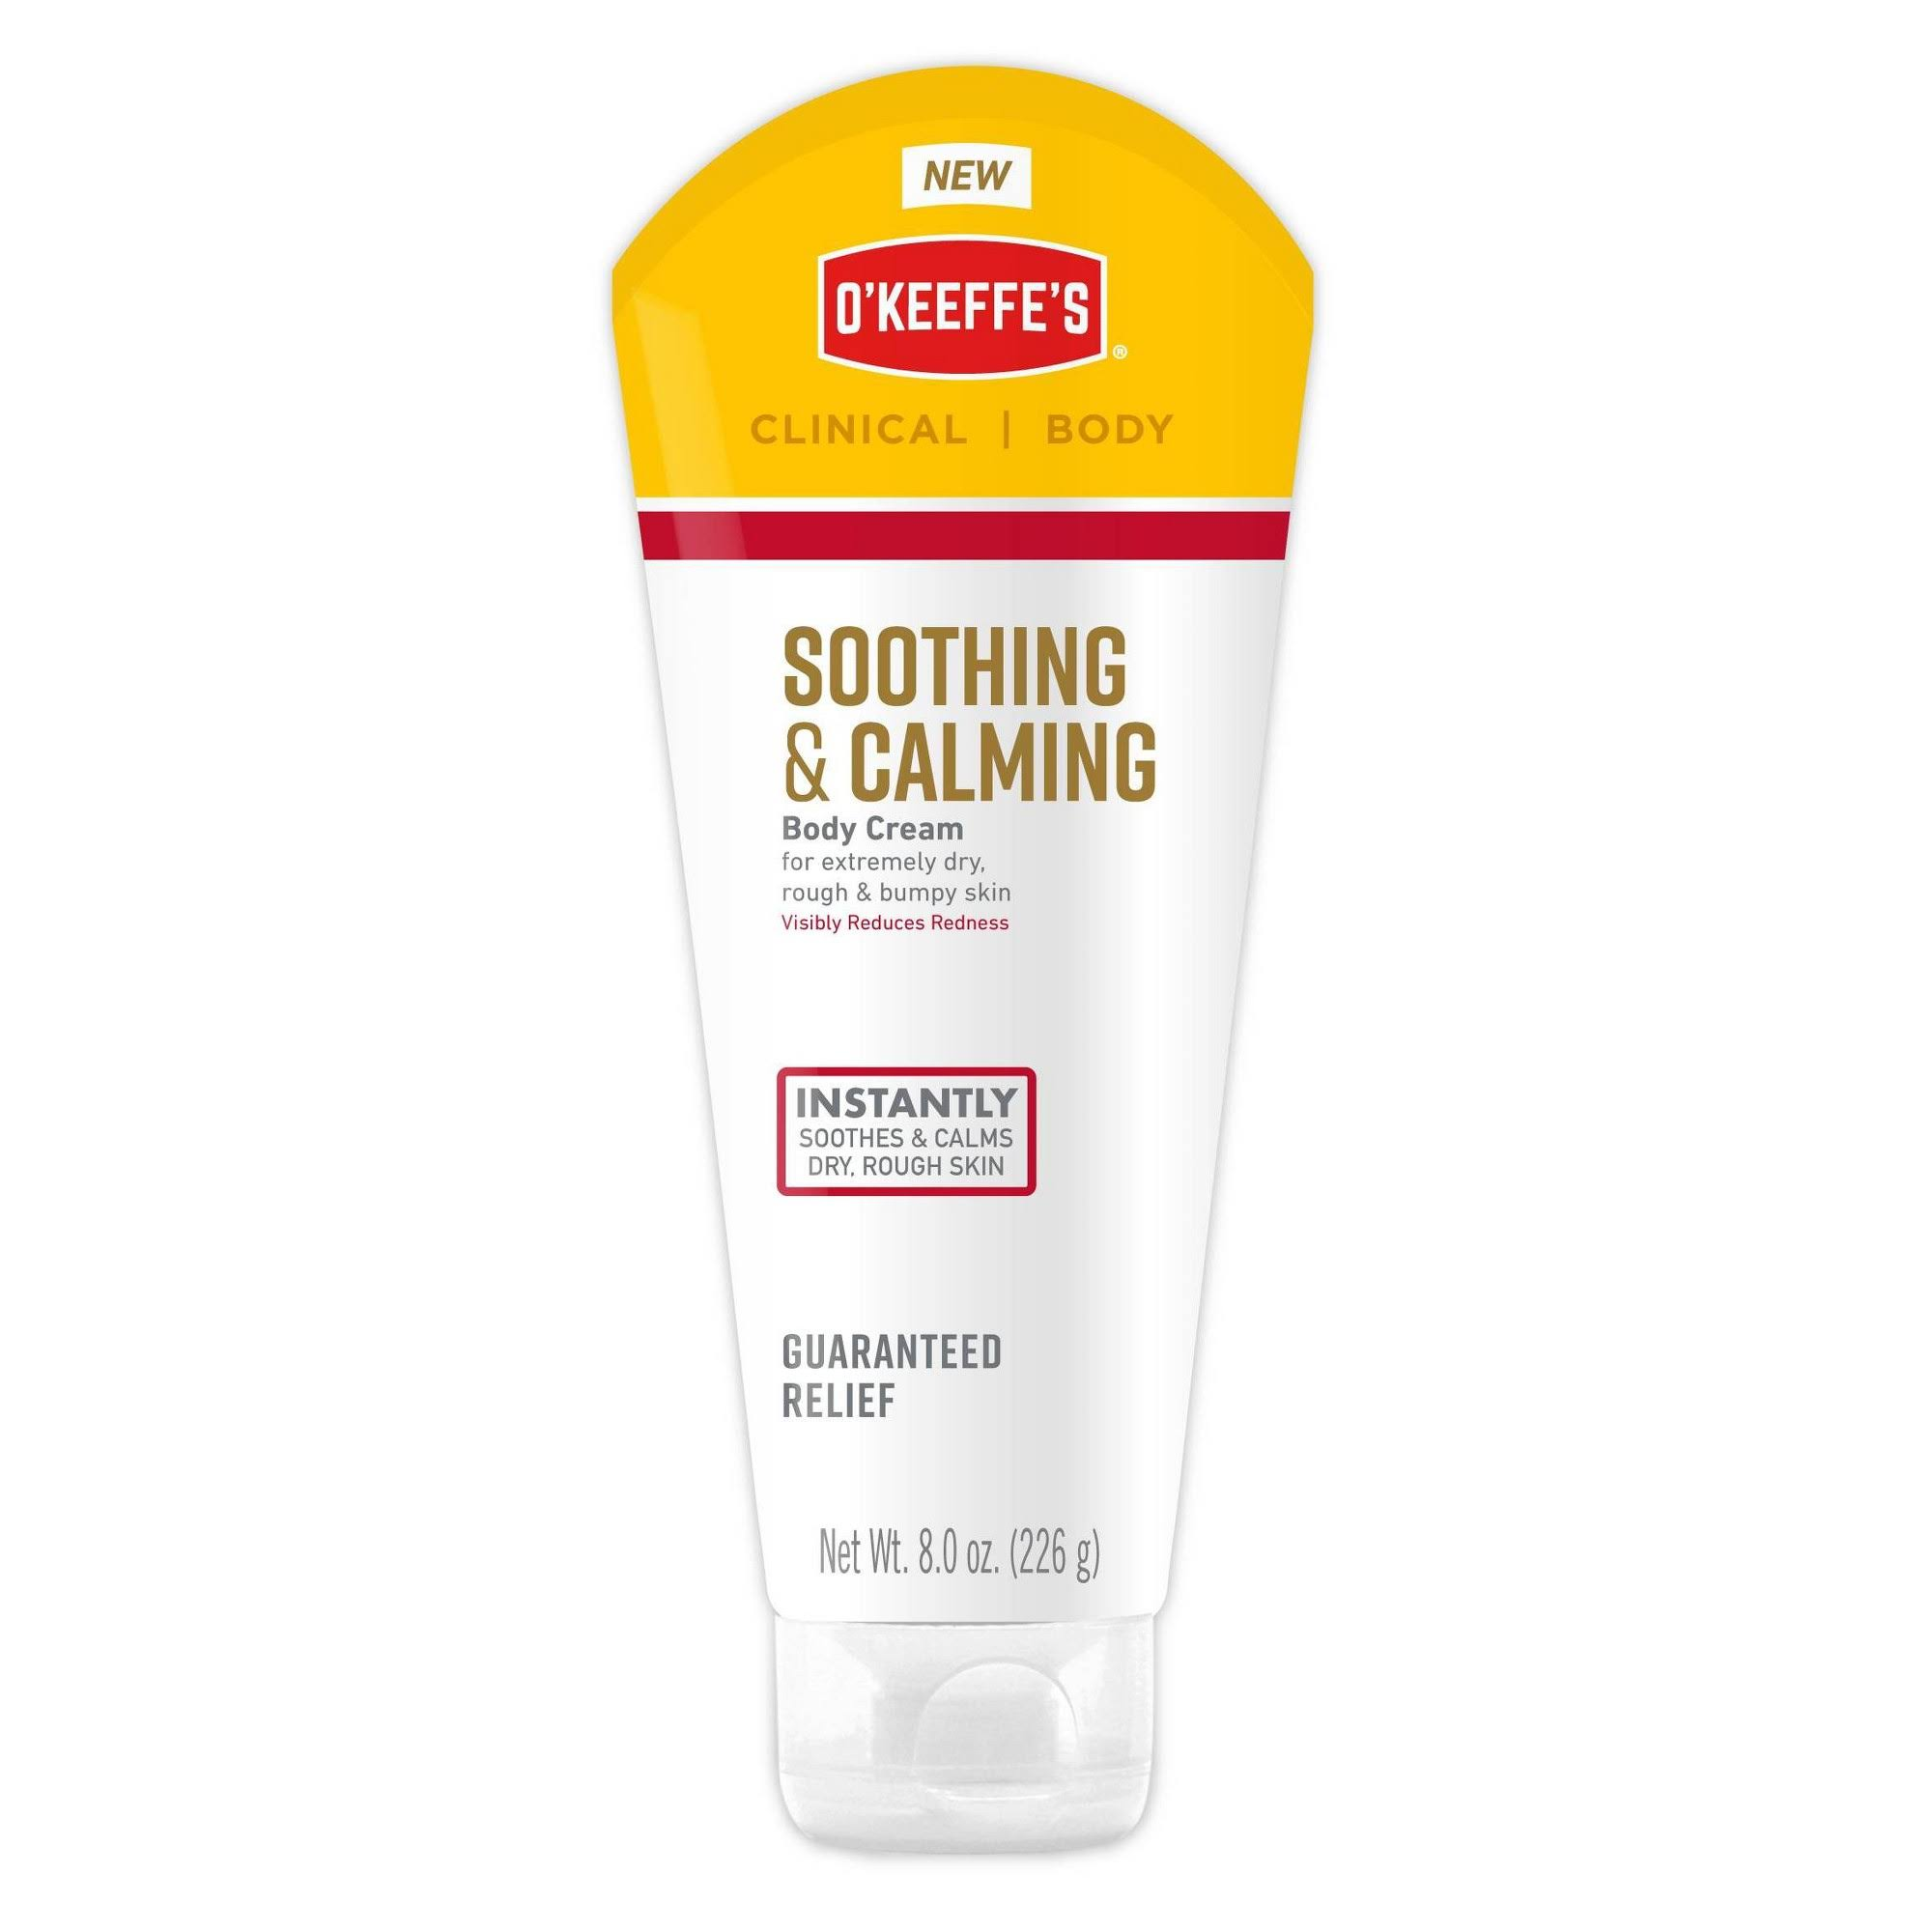 O'Keeffe's Soothing & Calming Body Cream - 8oz